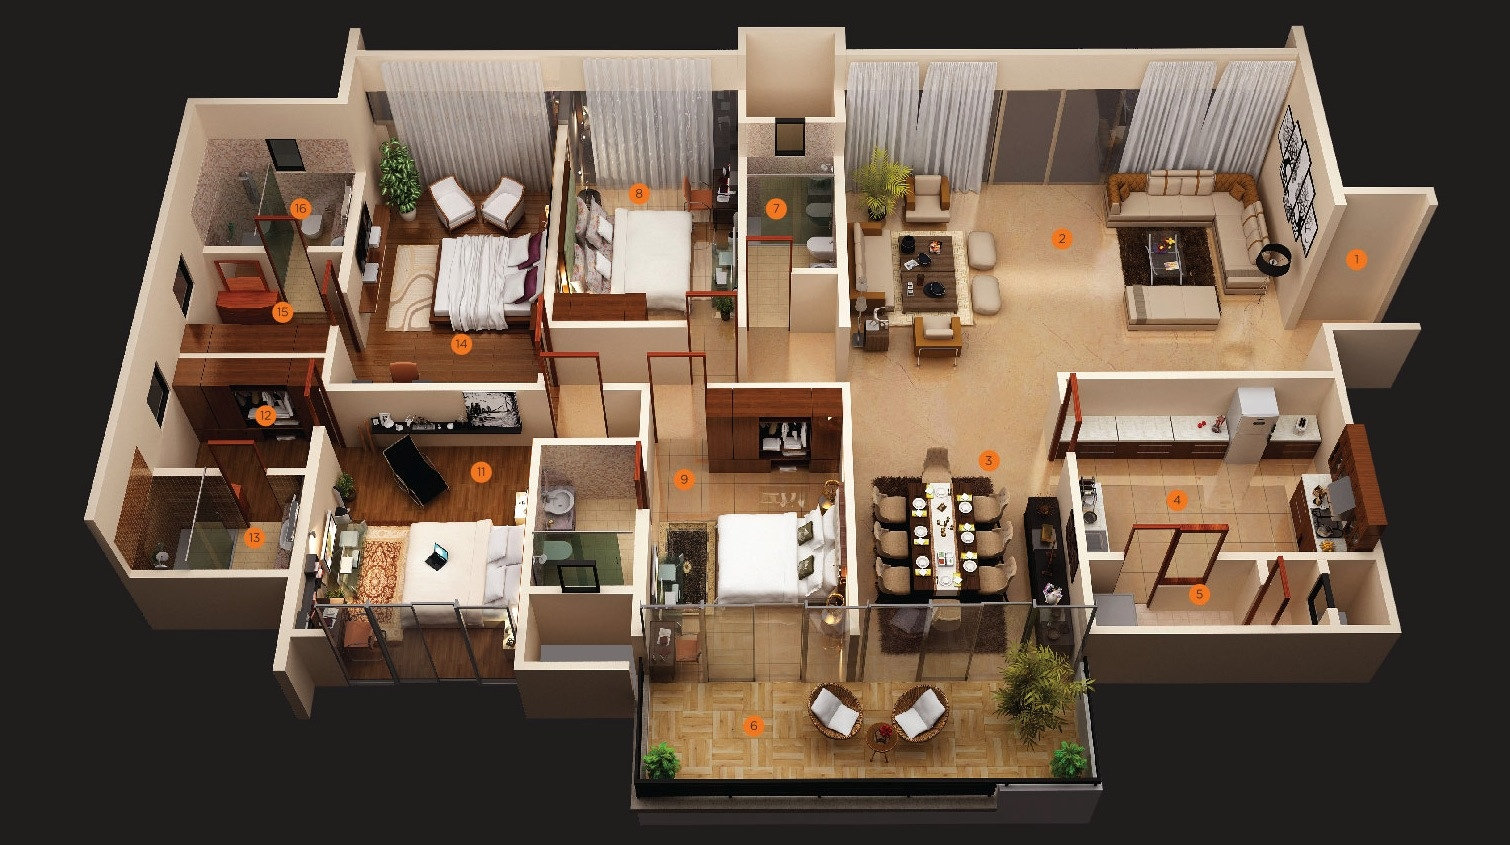 50 four 4 bedroom apartment house plans architecture design. Black Bedroom Furniture Sets. Home Design Ideas